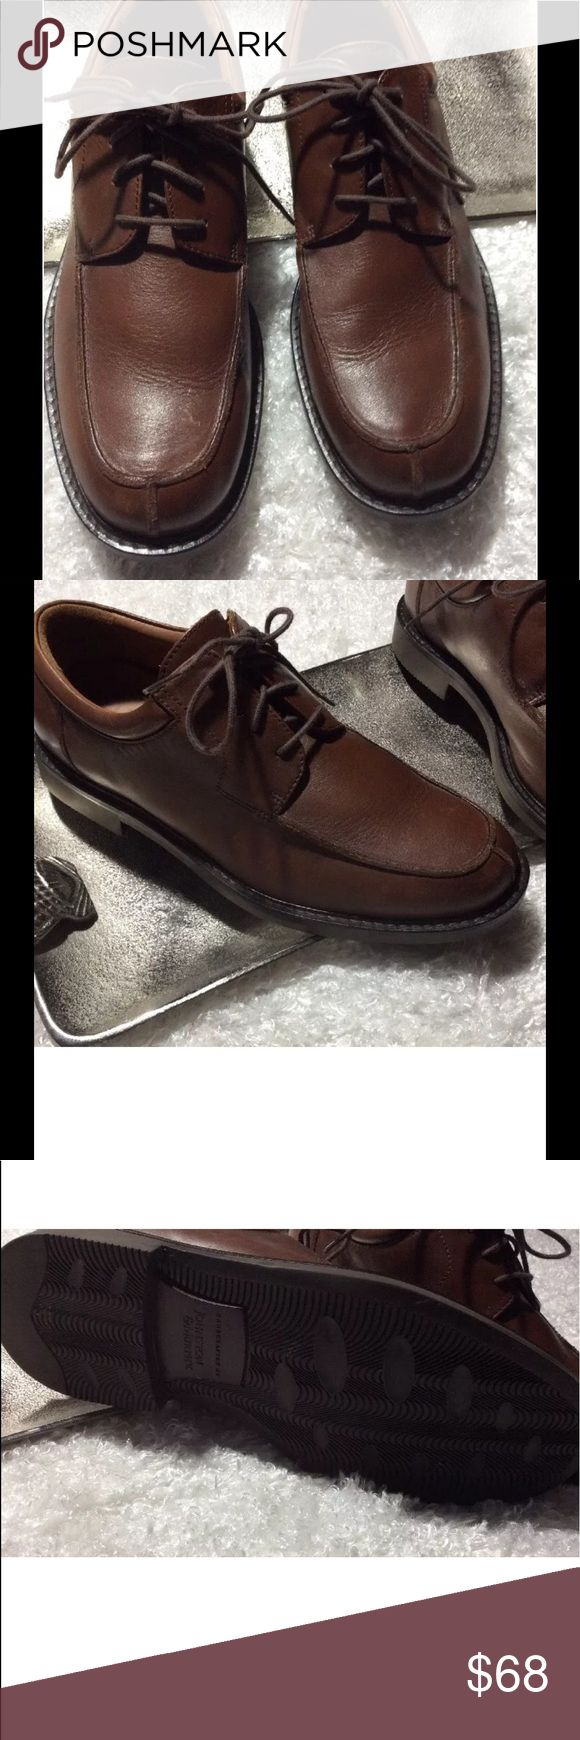 Johnston & Murphy Oxford Shoes Johnston & Murphy Brown Split Toe Oxfords Lace Up Shoes MENS SZ 9 M Johnston & Murphy Shoes Oxfords & Derbys